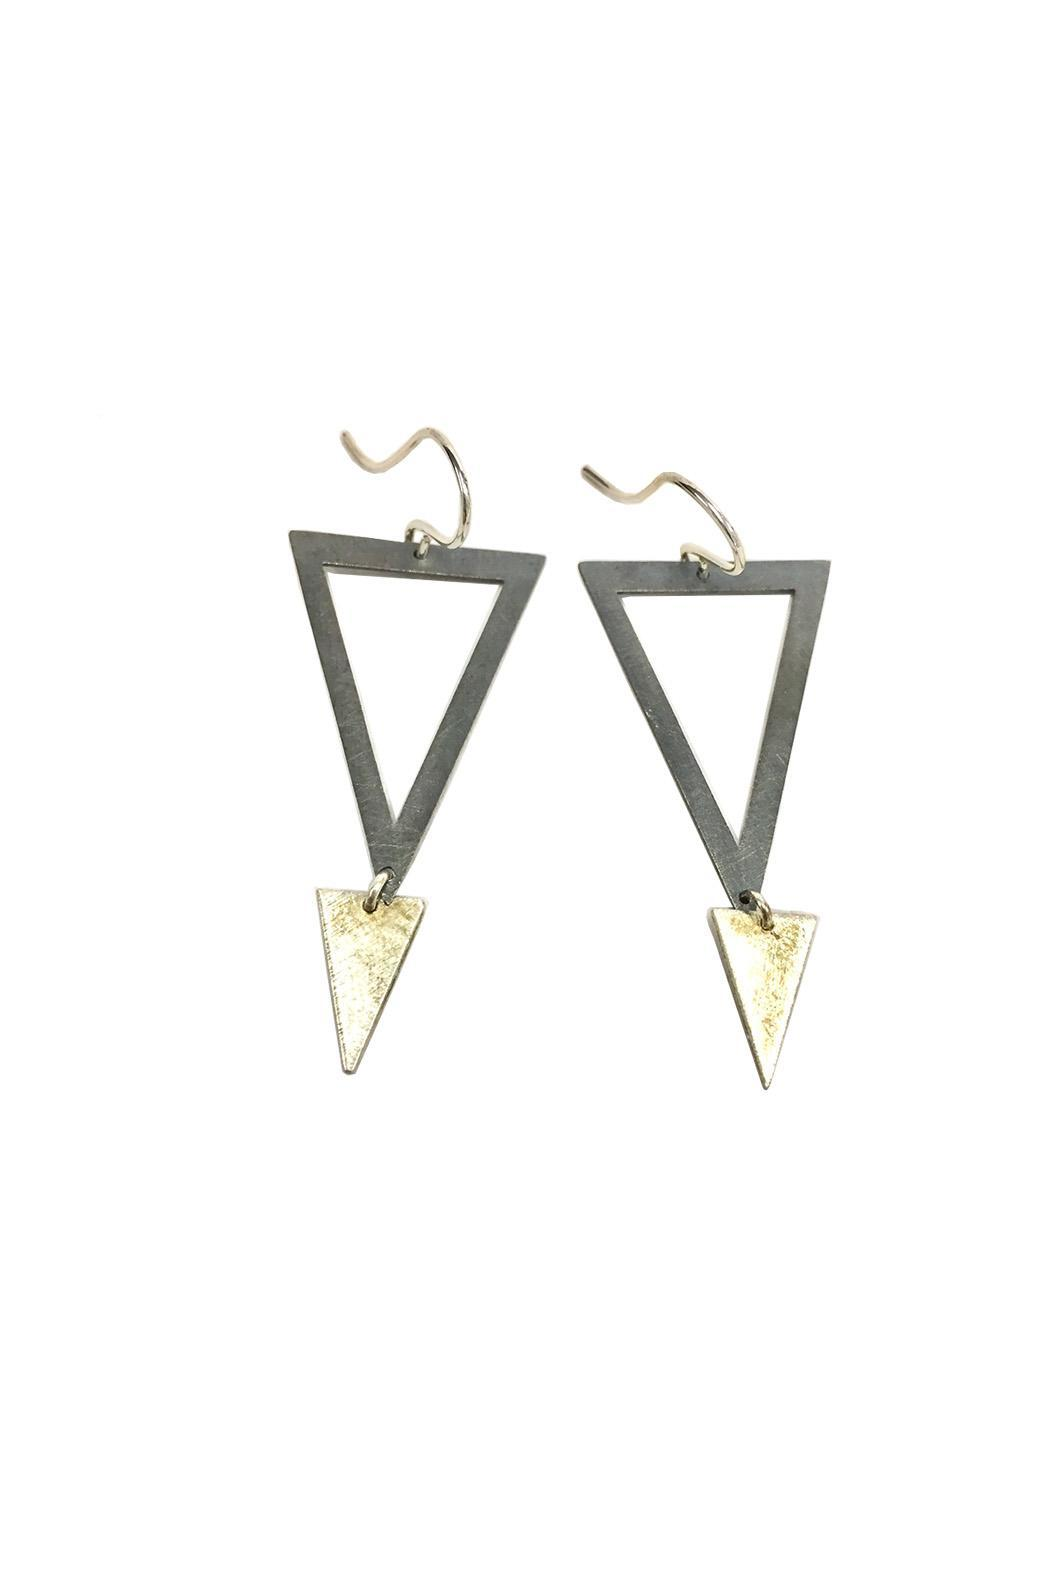 Zina Kao Silver Triangle Earrings - Main Image